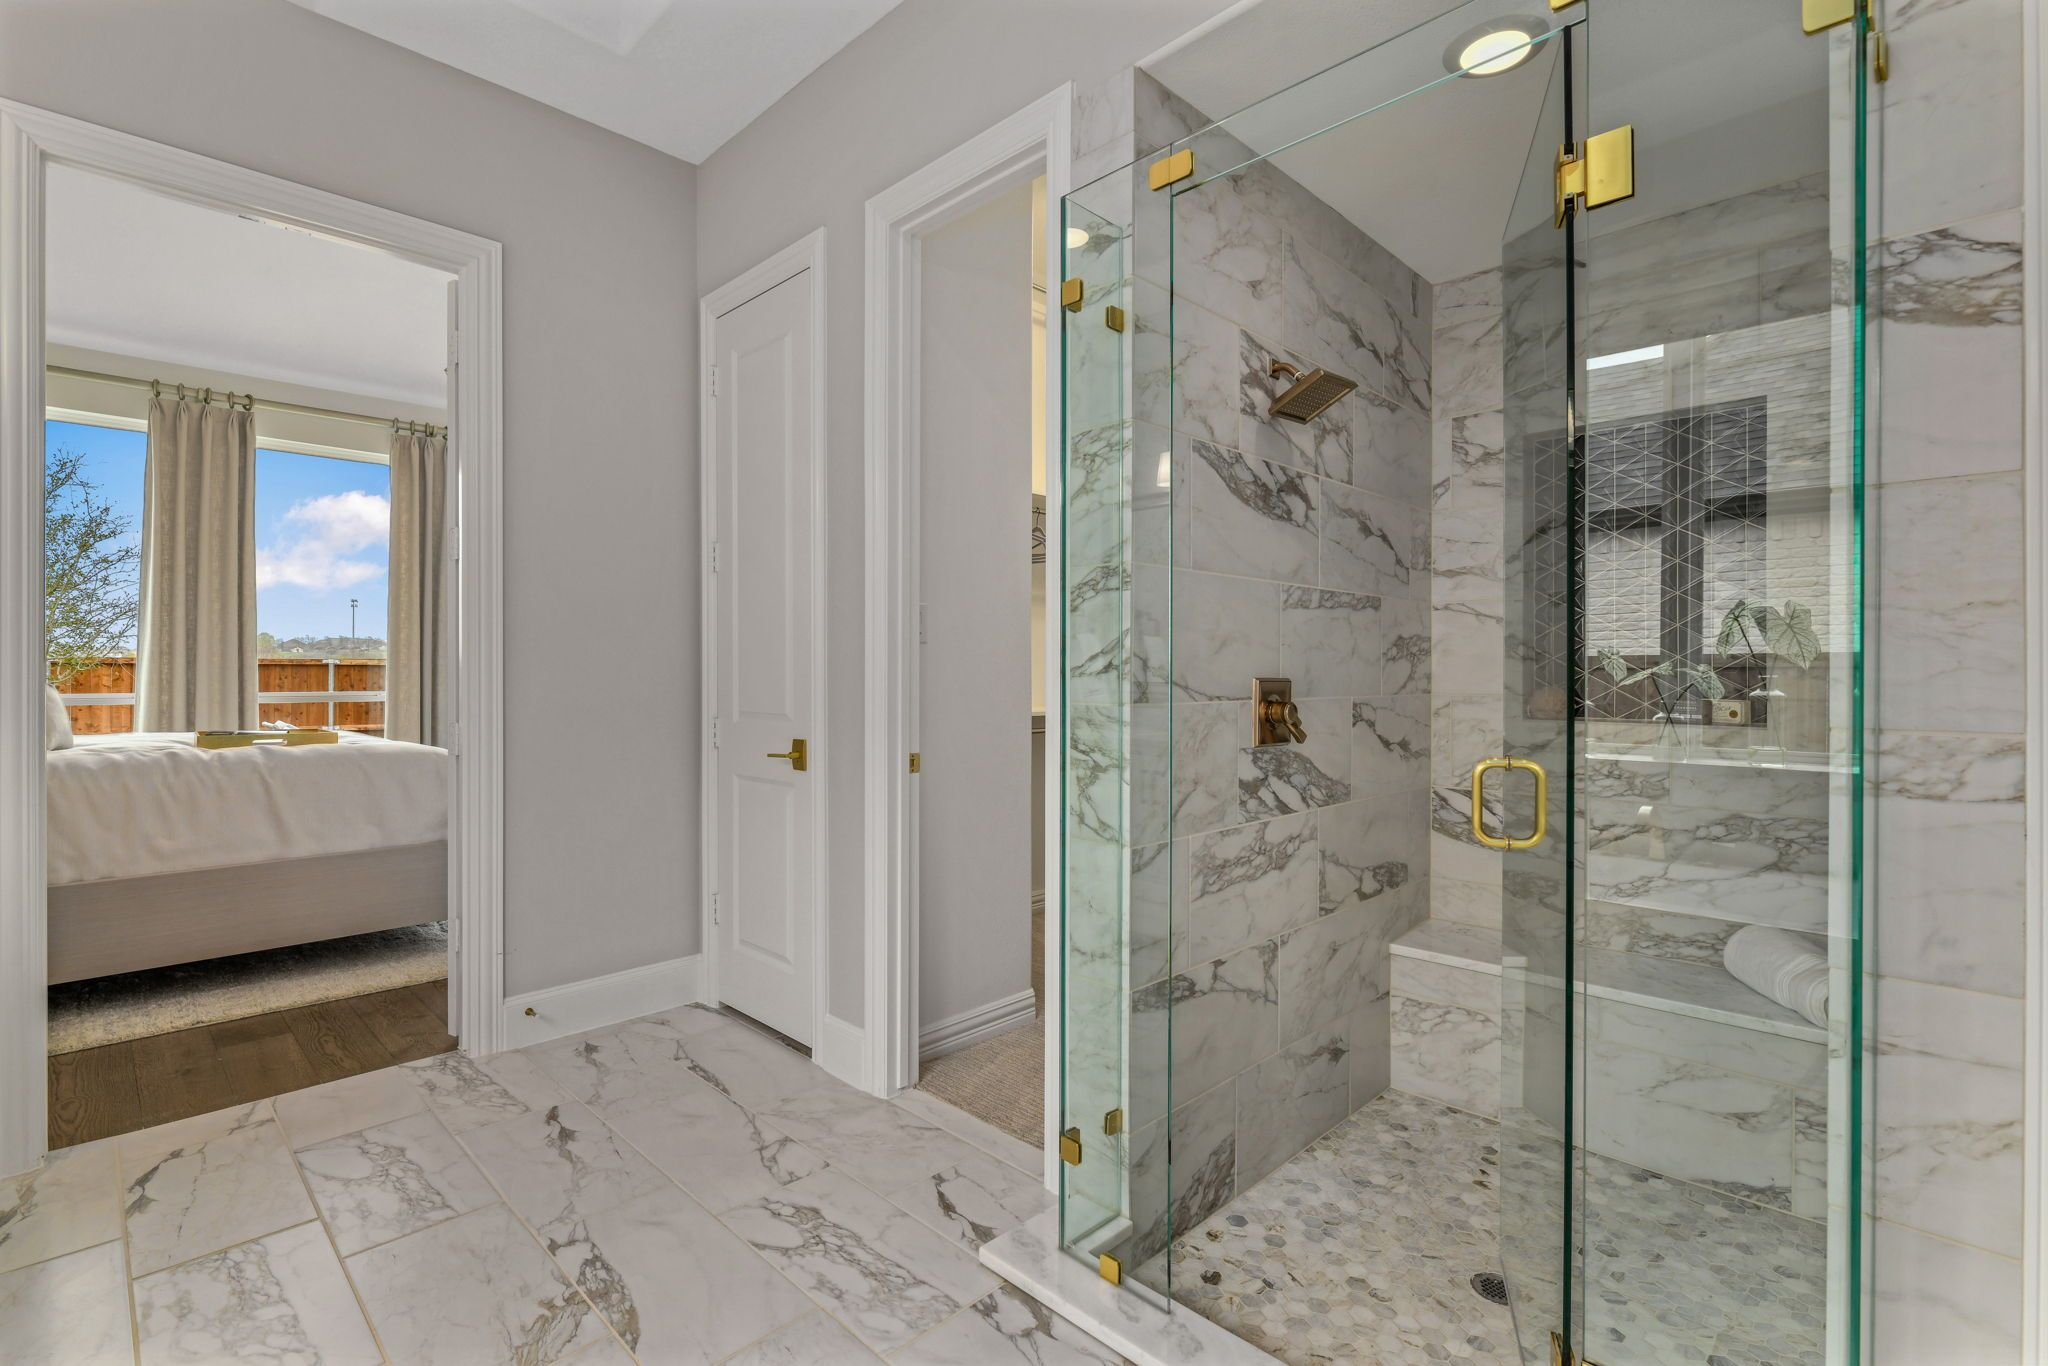 Bathroom featured in the B815 By BelclaireHomes in Dallas, TX